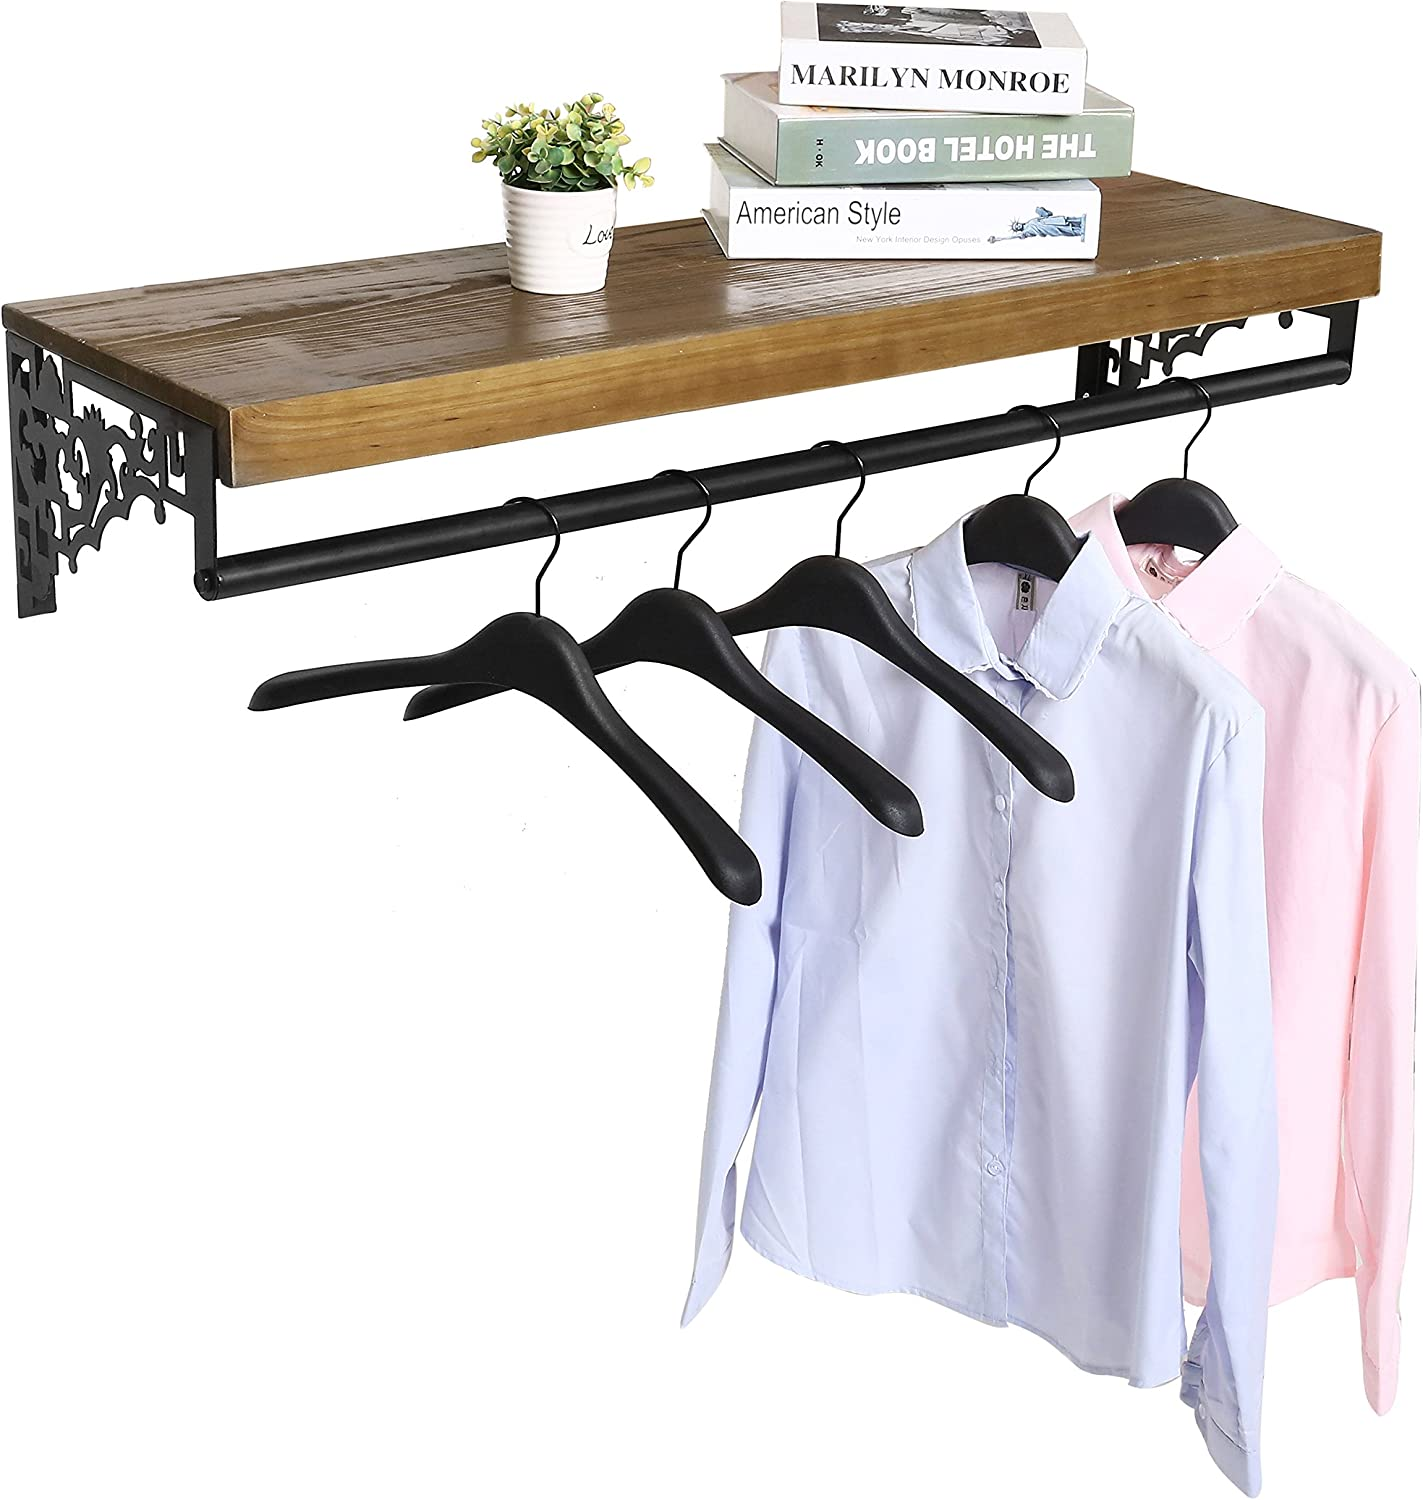 Wall Mounted Wood & Metal Floating Shelf w Garment Hanger Rod, Decorative Retail Clothing Rack, Brown